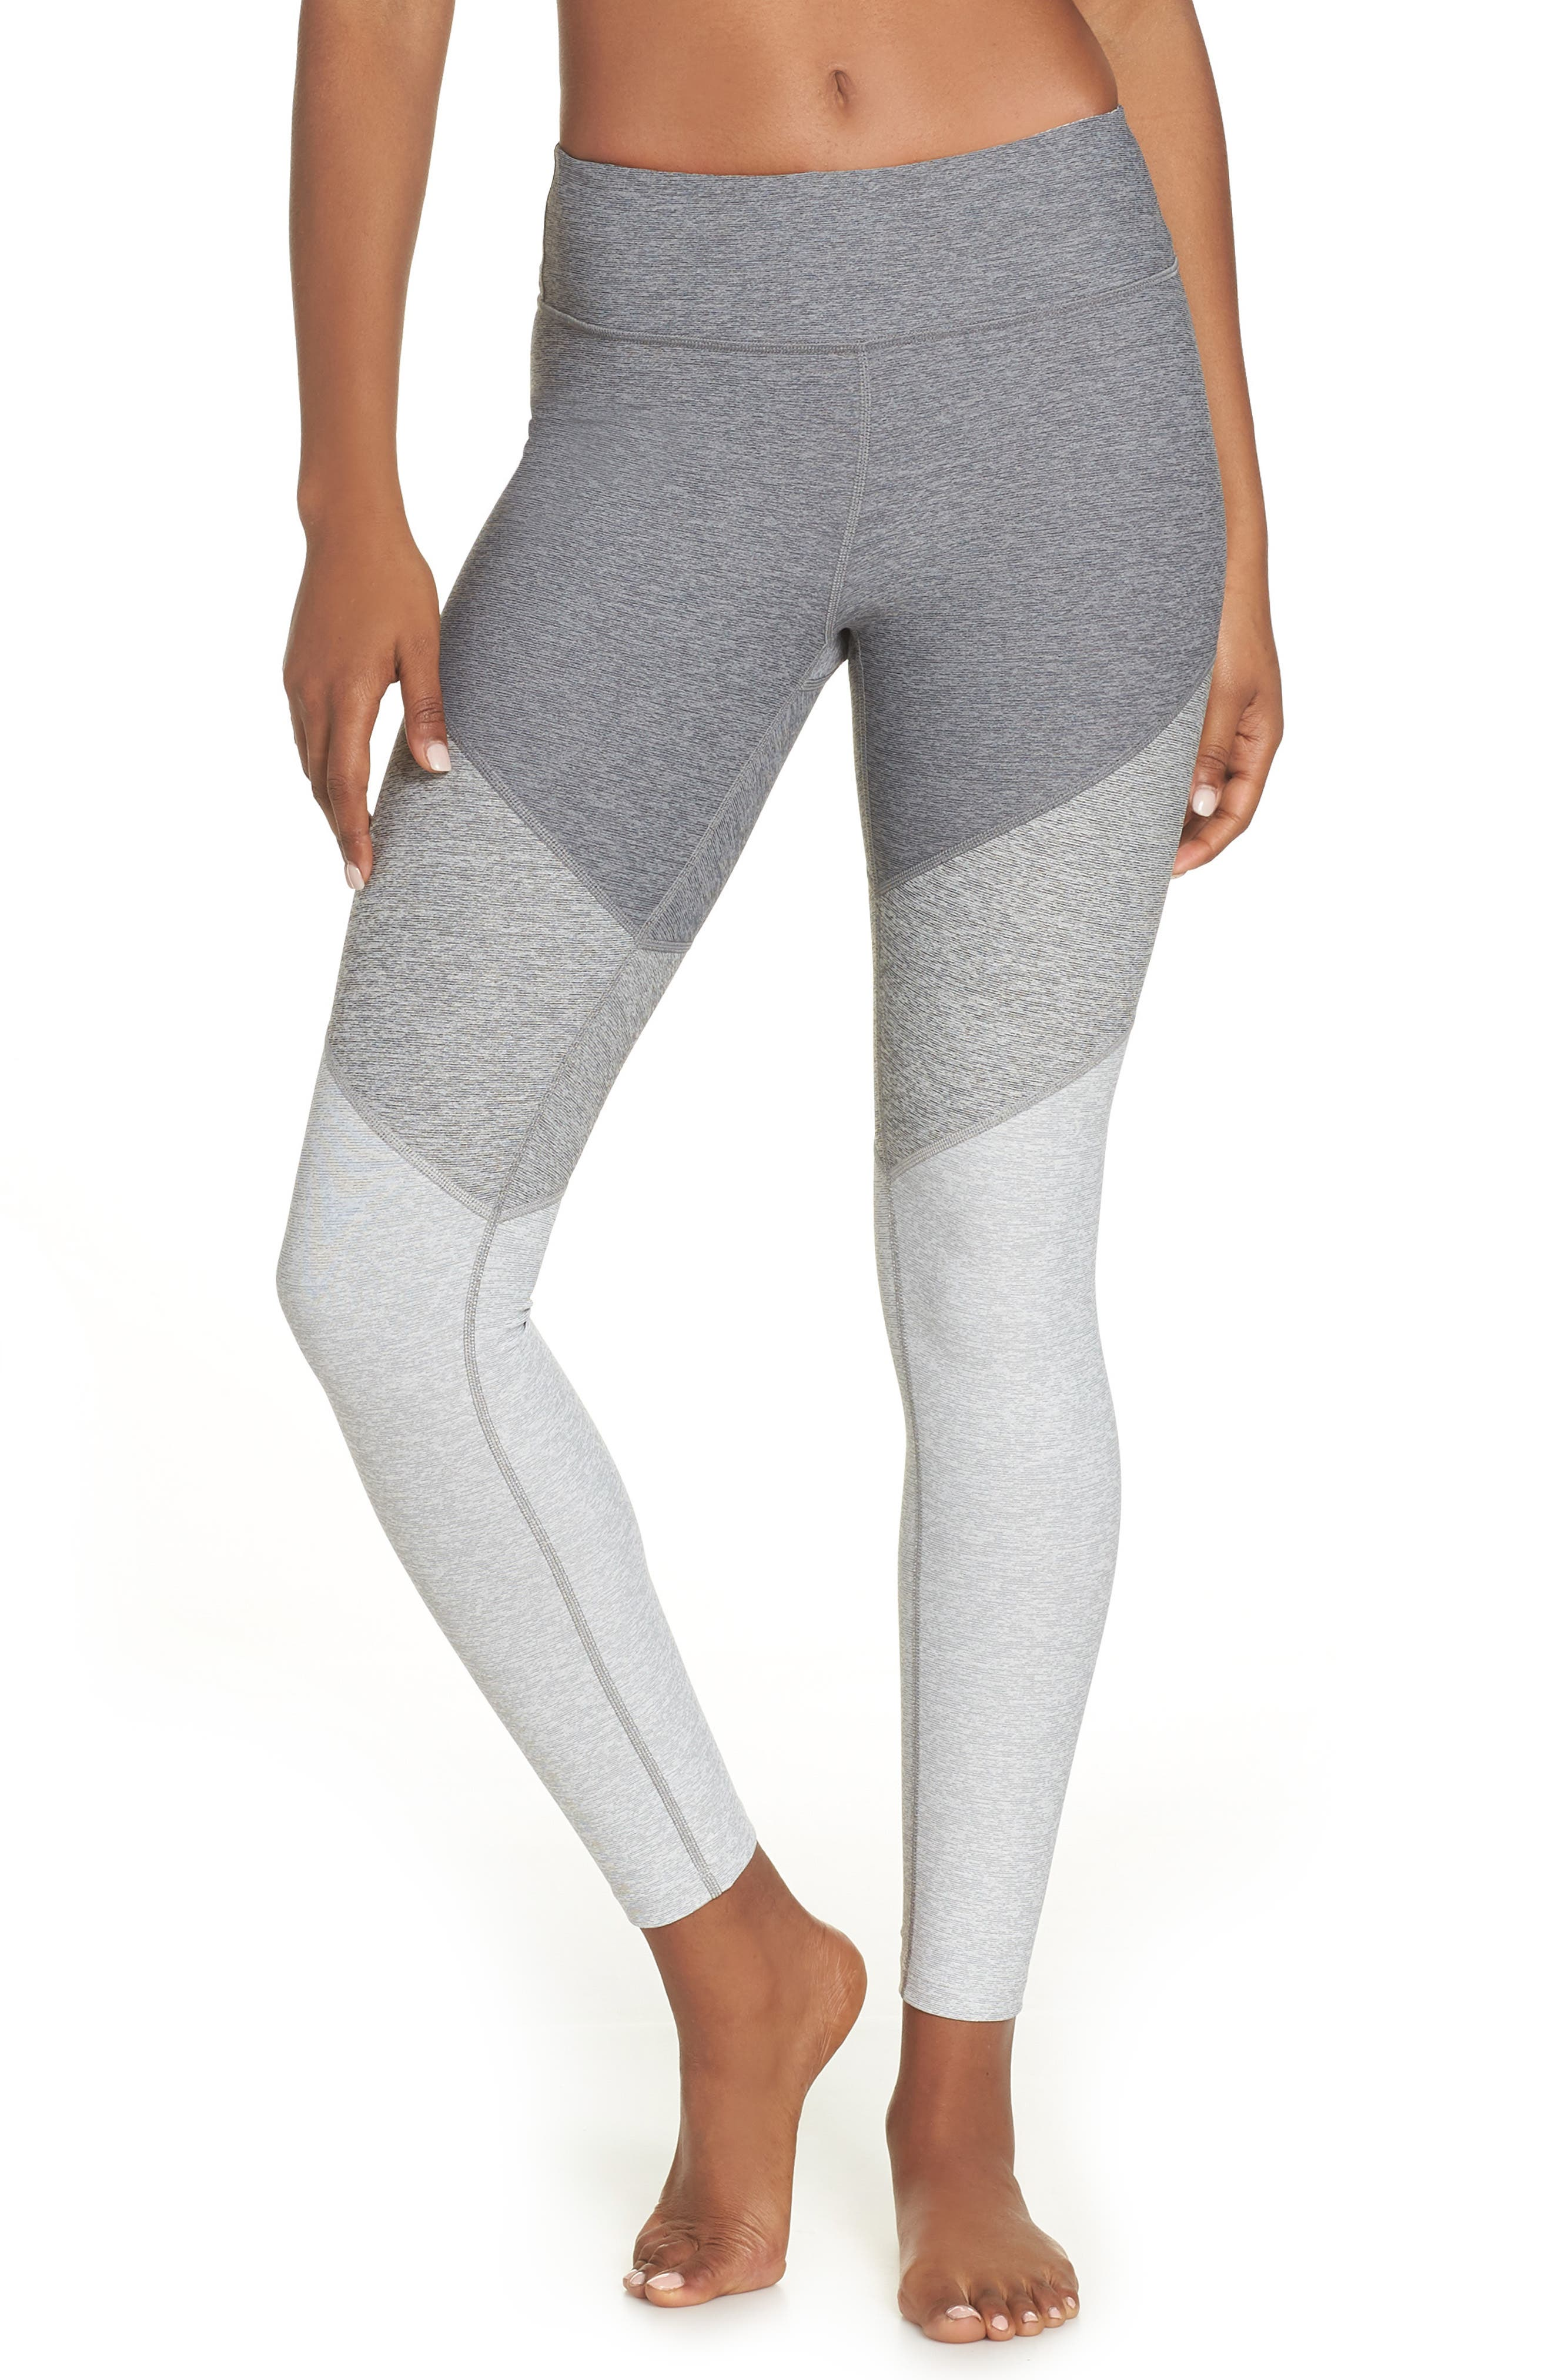 Outdoor Voices 7/8 Springs Leggings, Grey